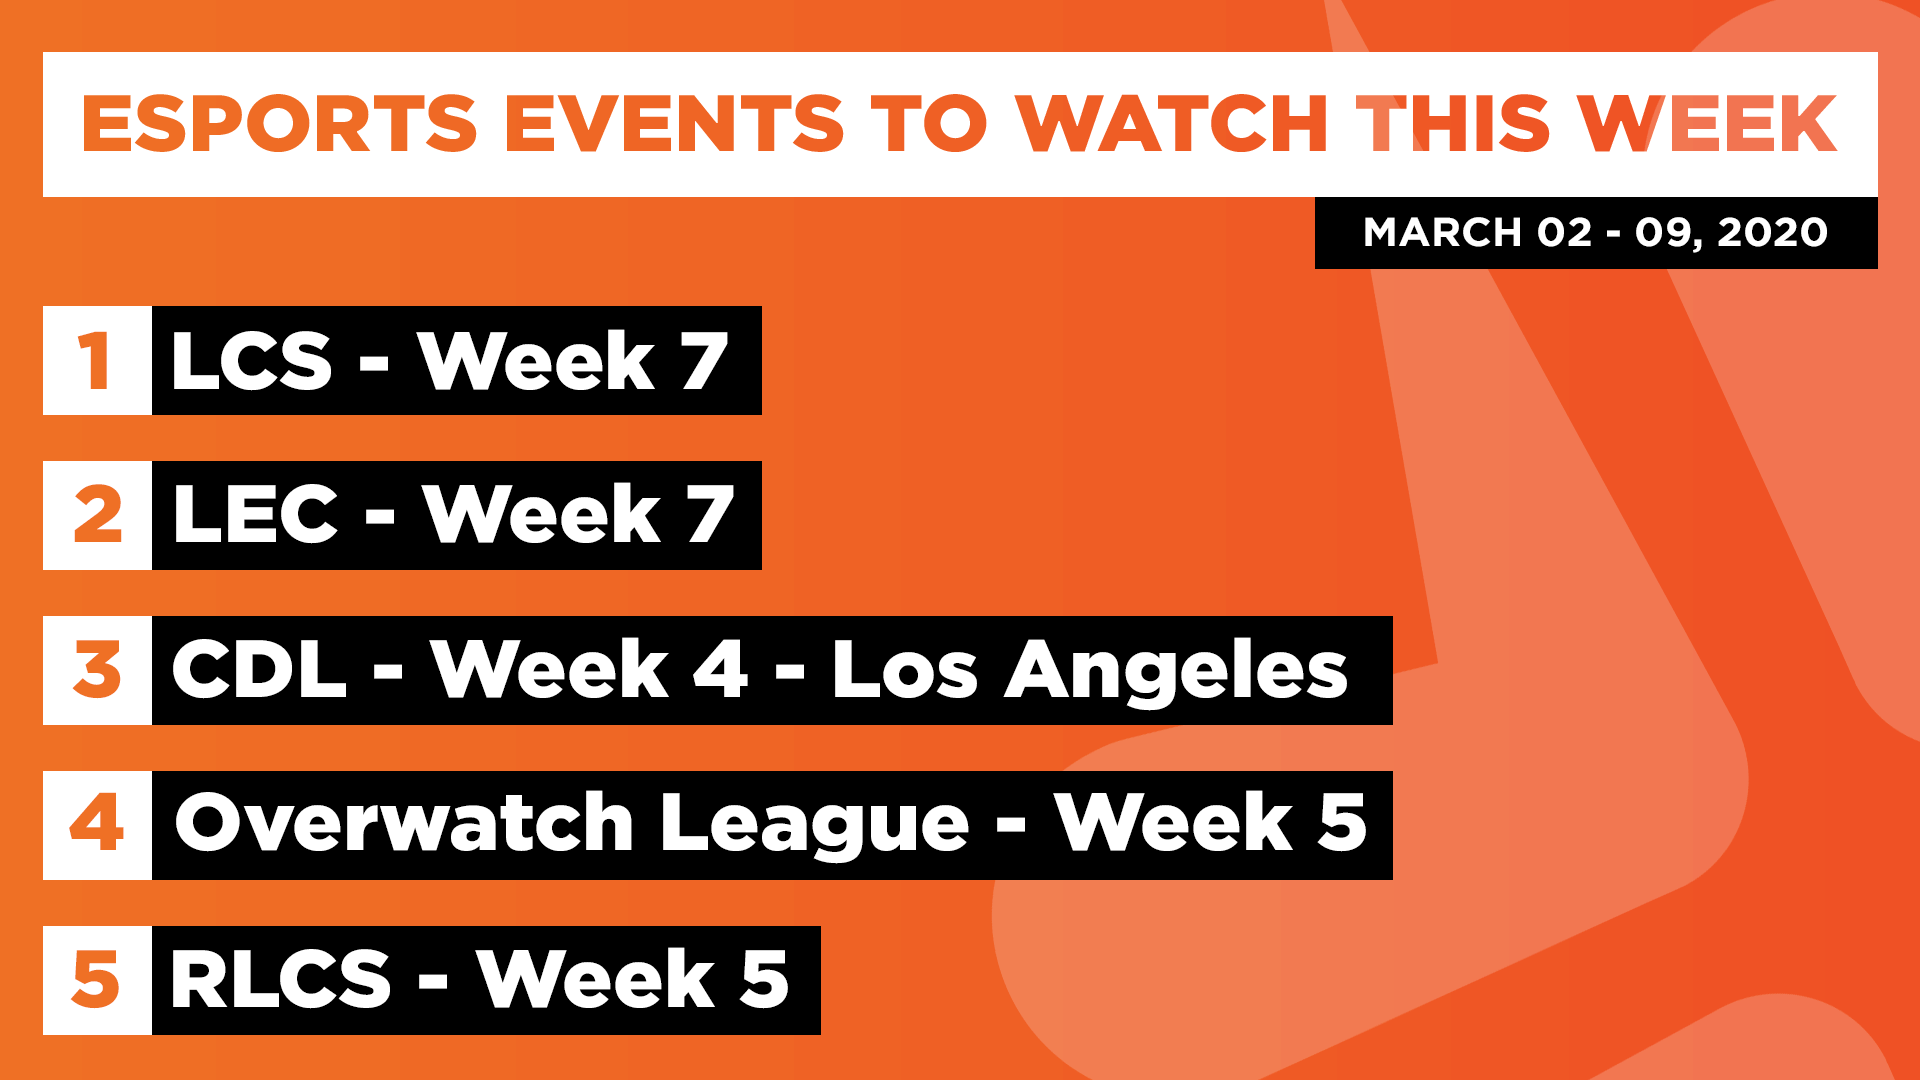 Esports Events to Watch This Week (Mar 02 – 09, 2020)